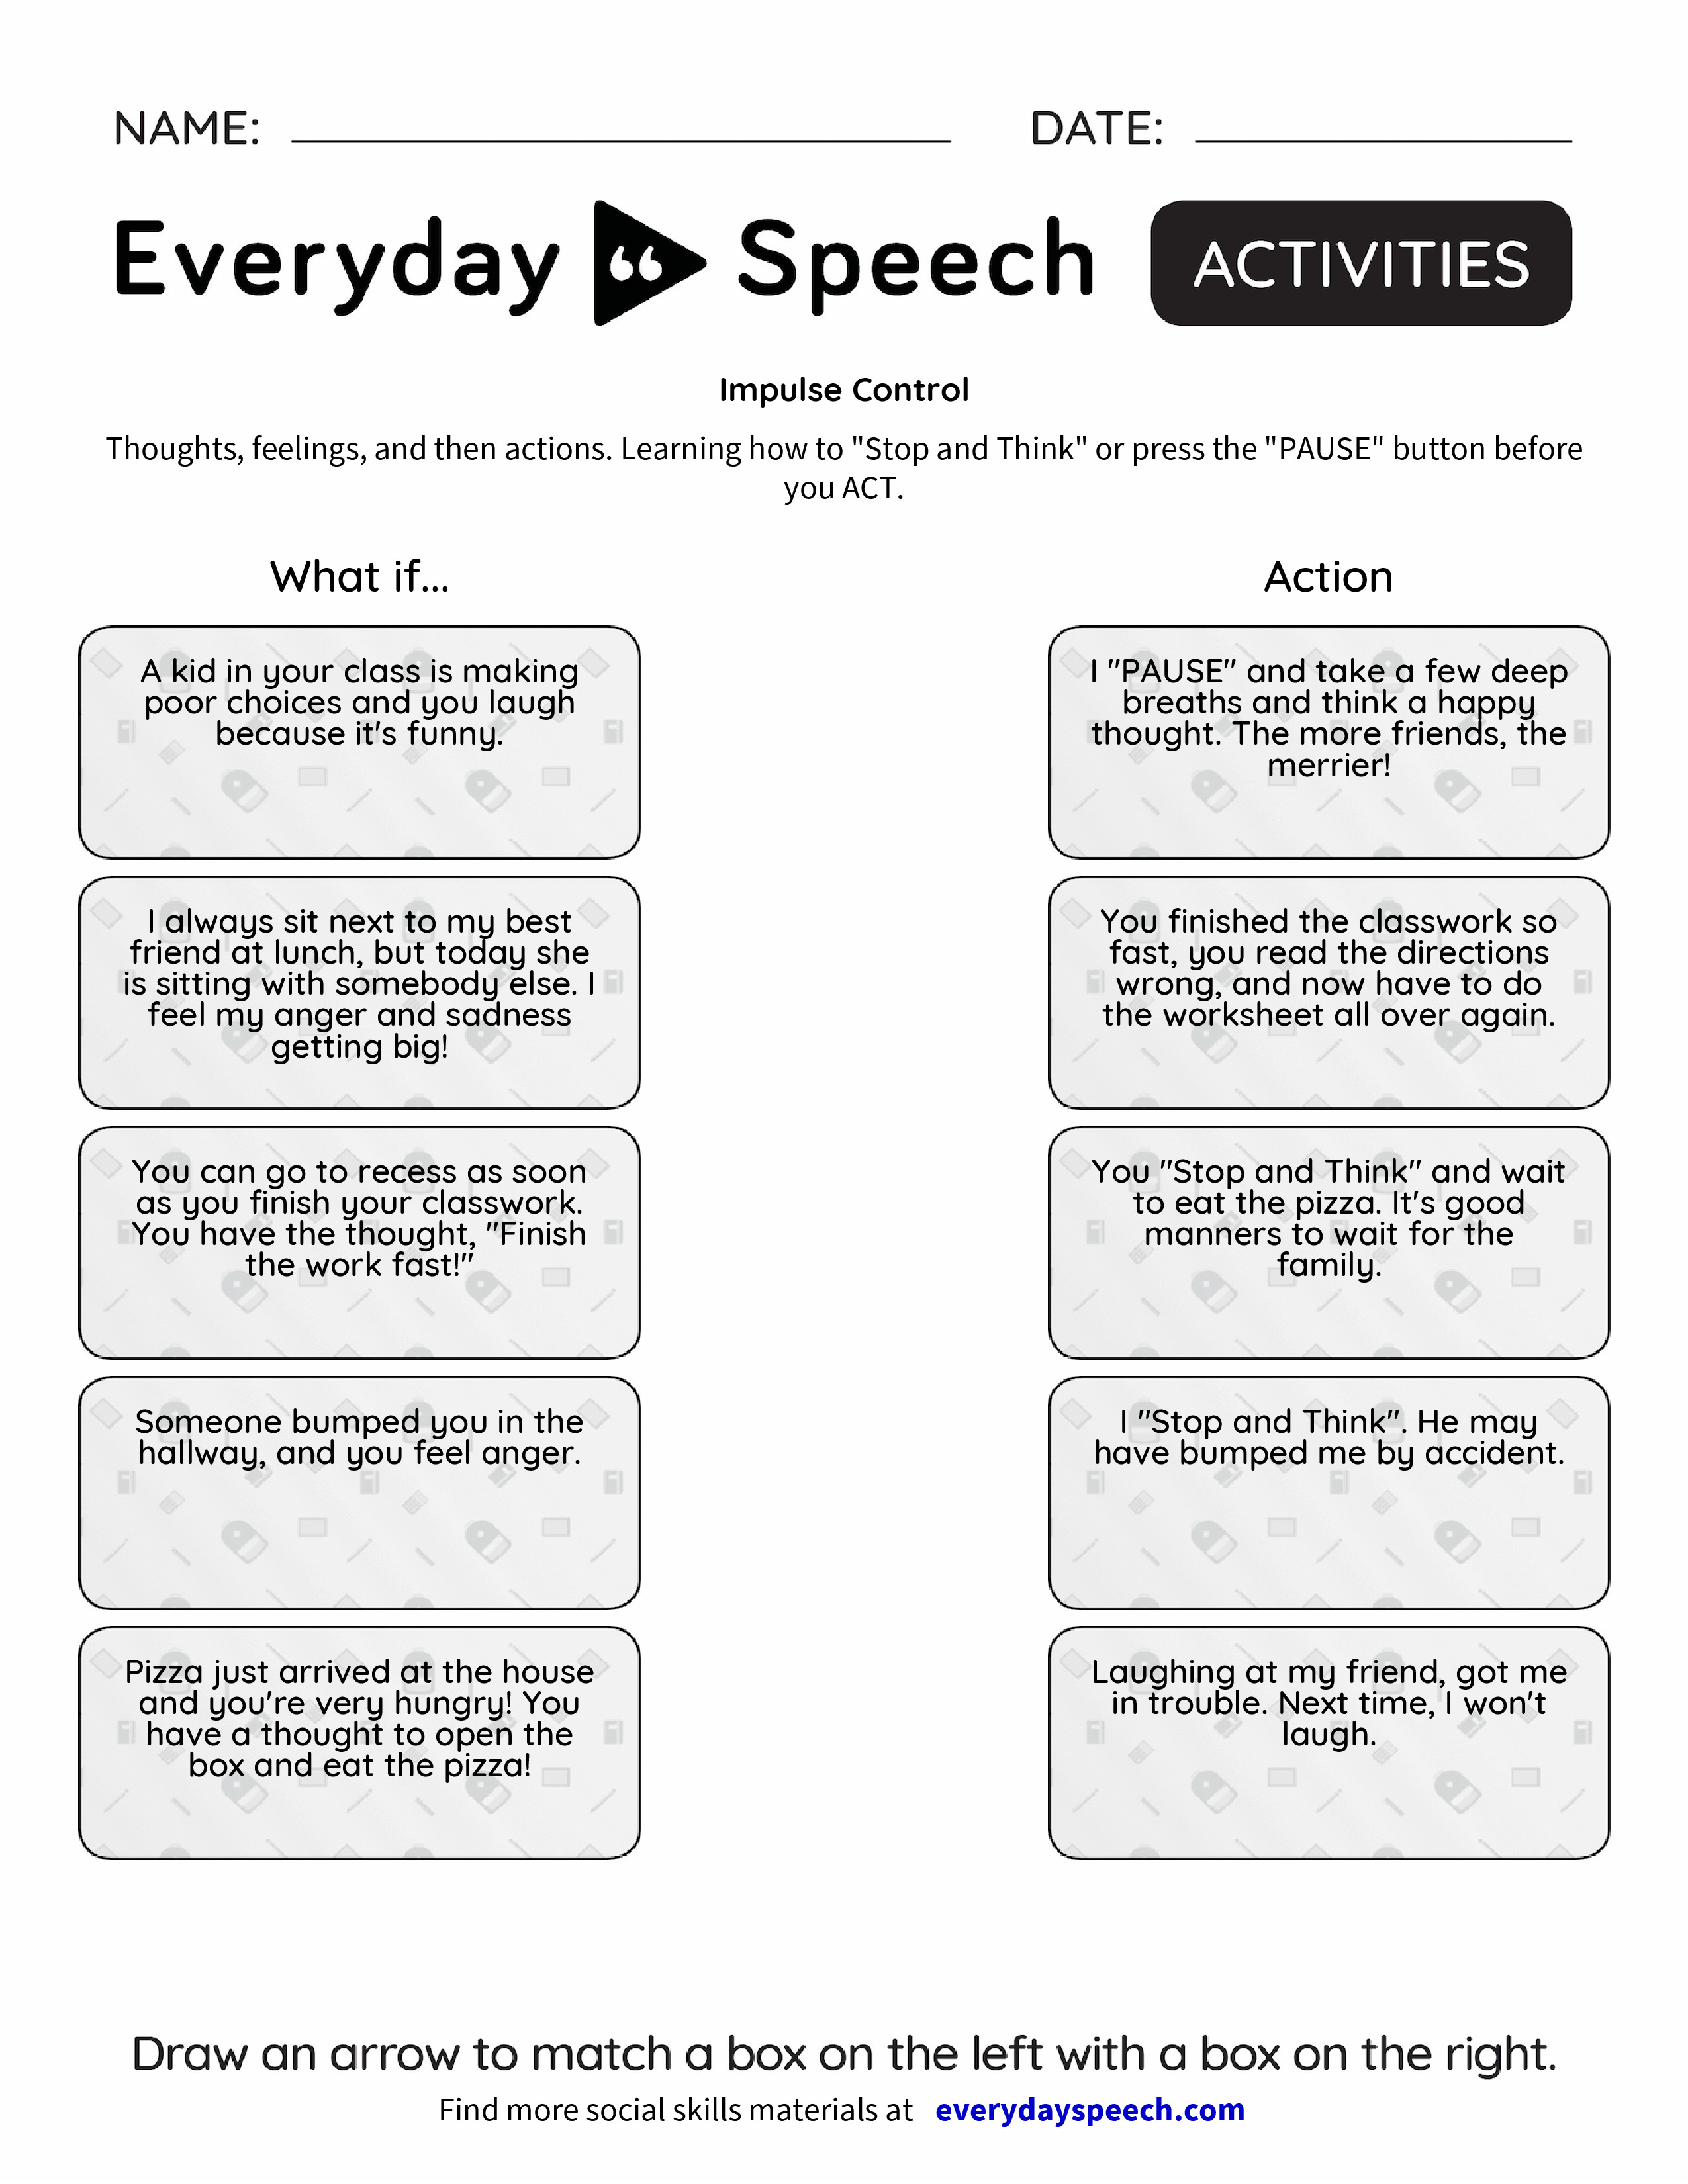 Worksheets Impulse Control Worksheets impulse control everyday speech preview preview